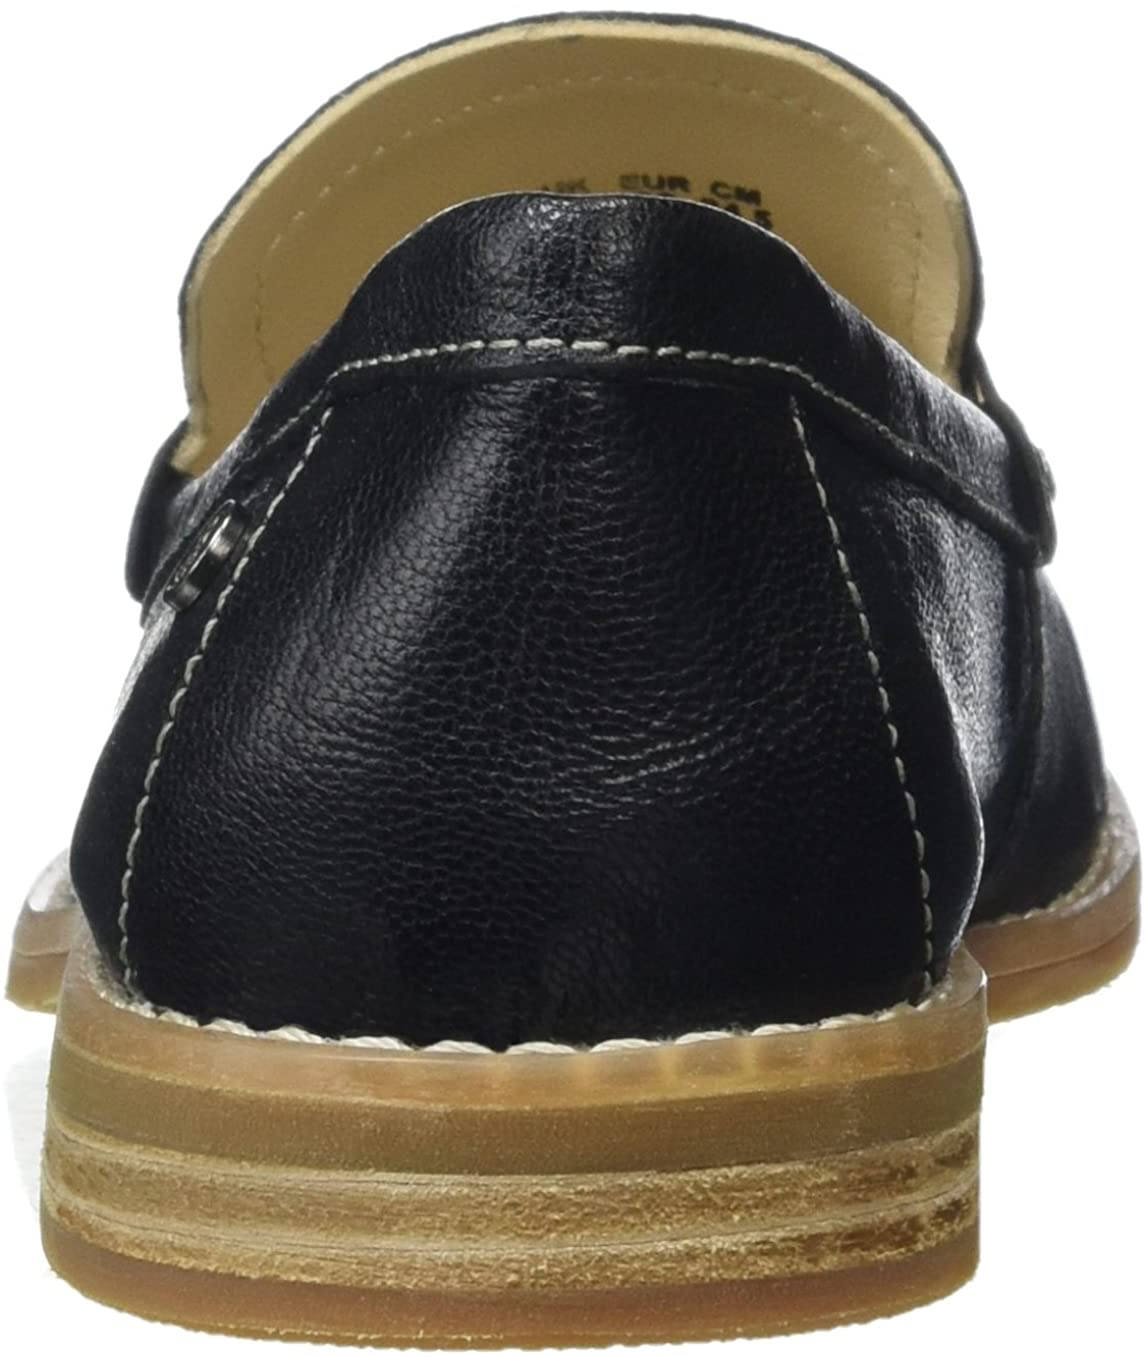 Hush Puppies Women's Aubree Chardon Loafers